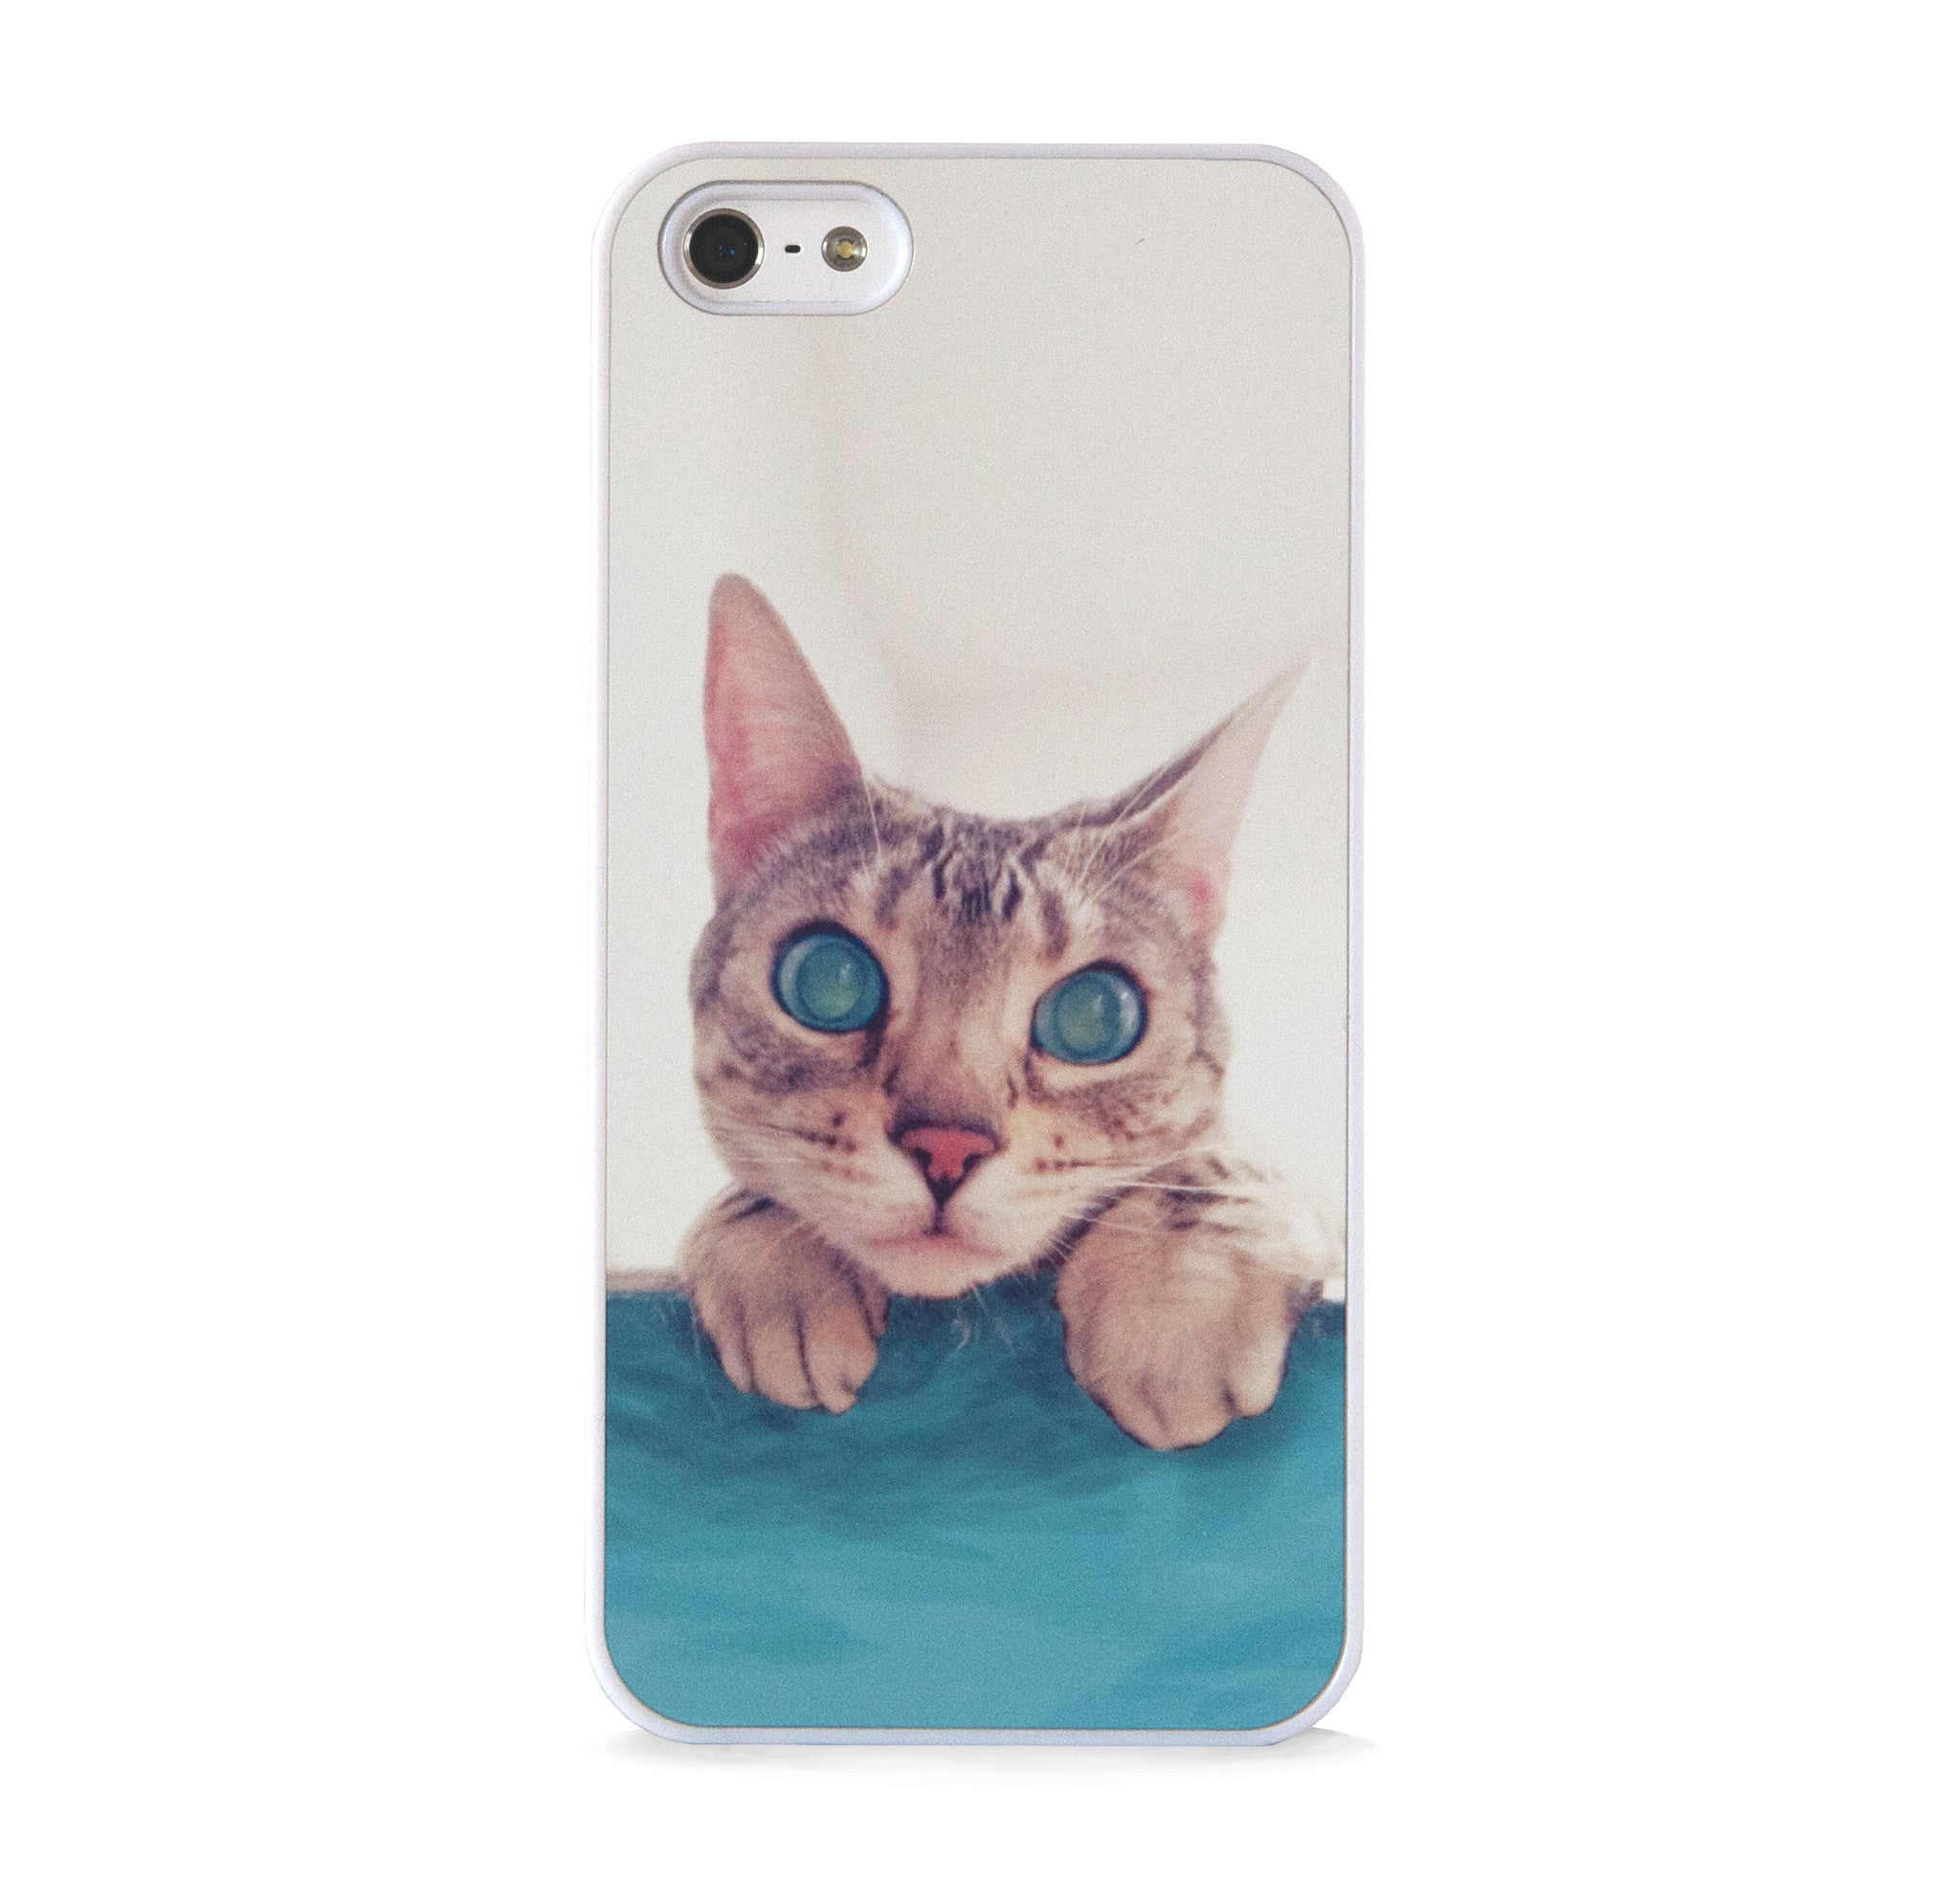 CUTE CAT MINT FOR IPHONE 5/5S, IPHONE SE